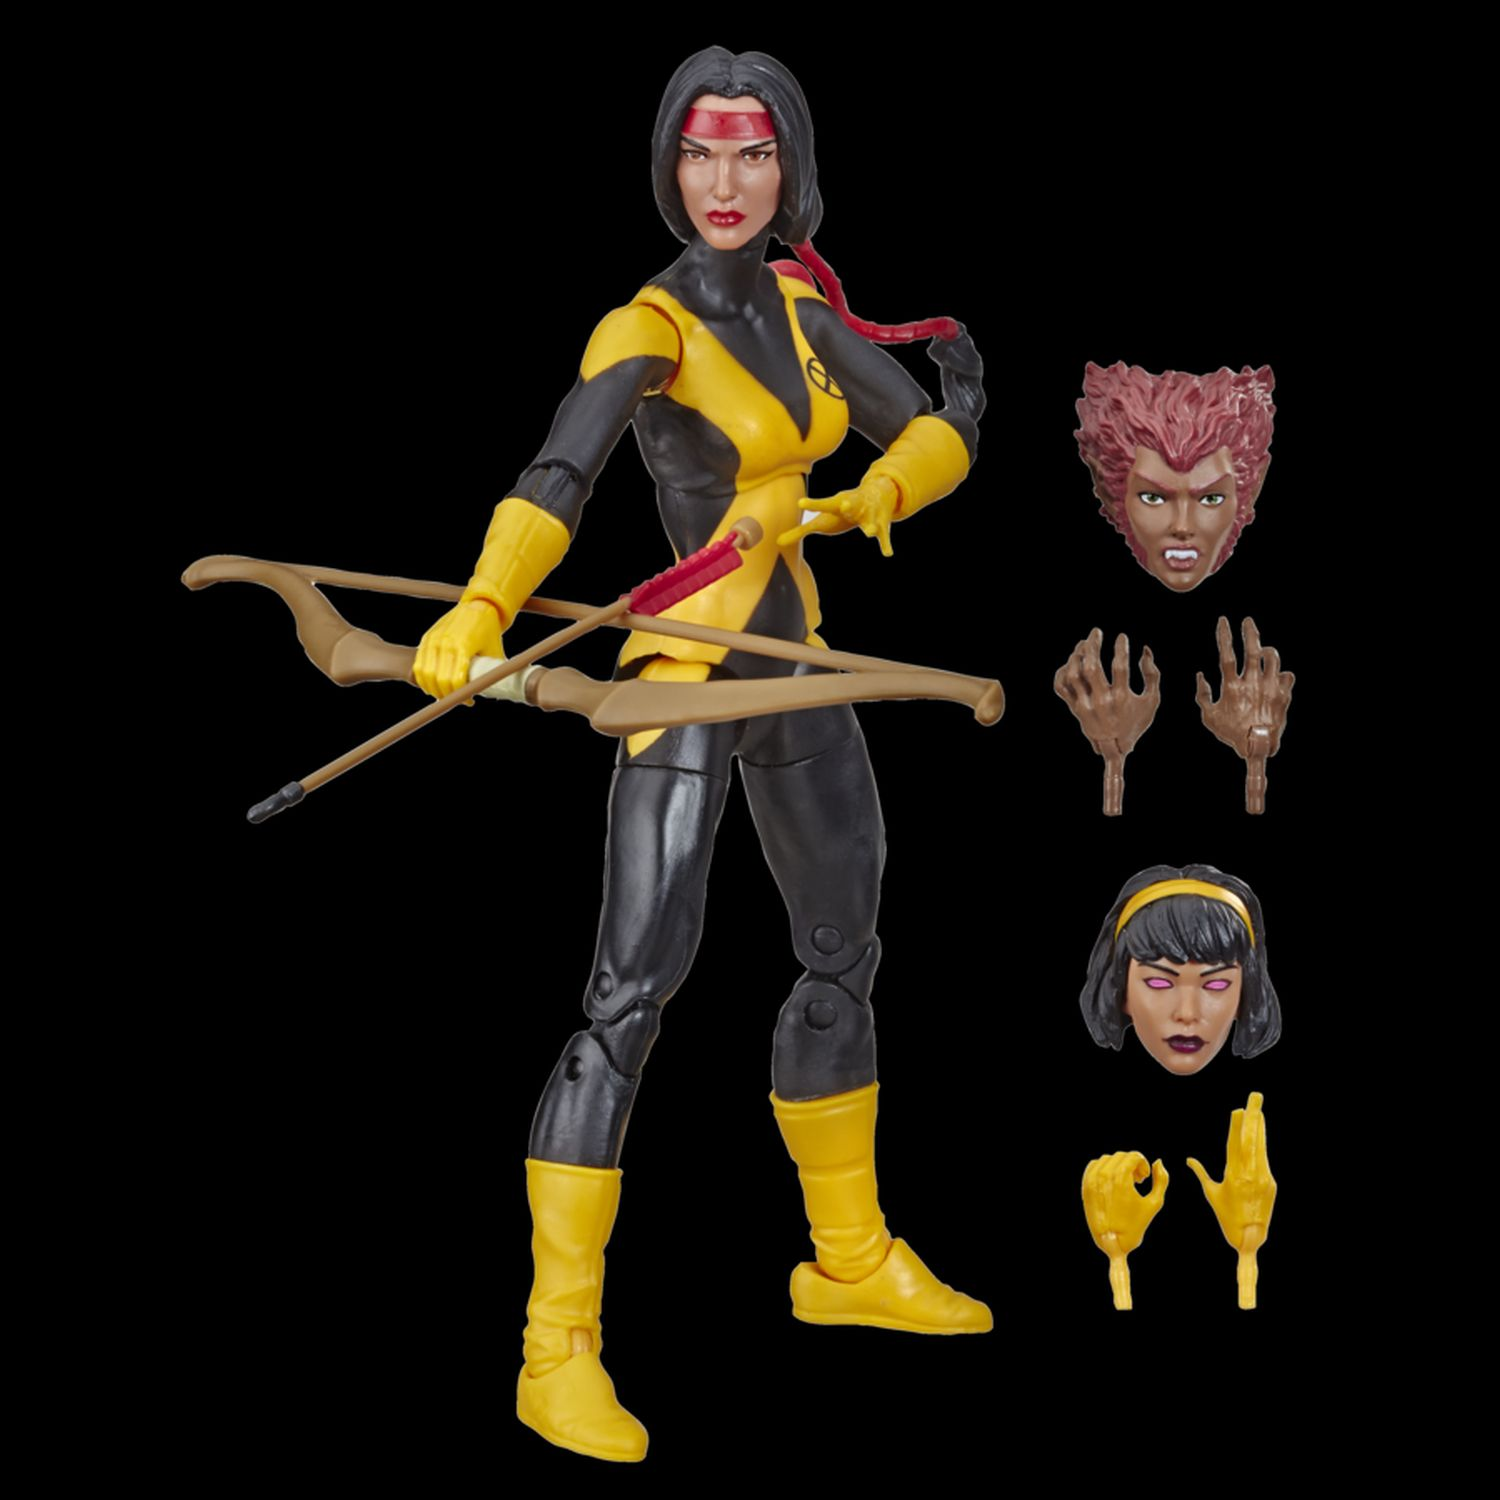 MARVEL-NEW-MUTANTS-LEGENDS-SERIES-6-INCH